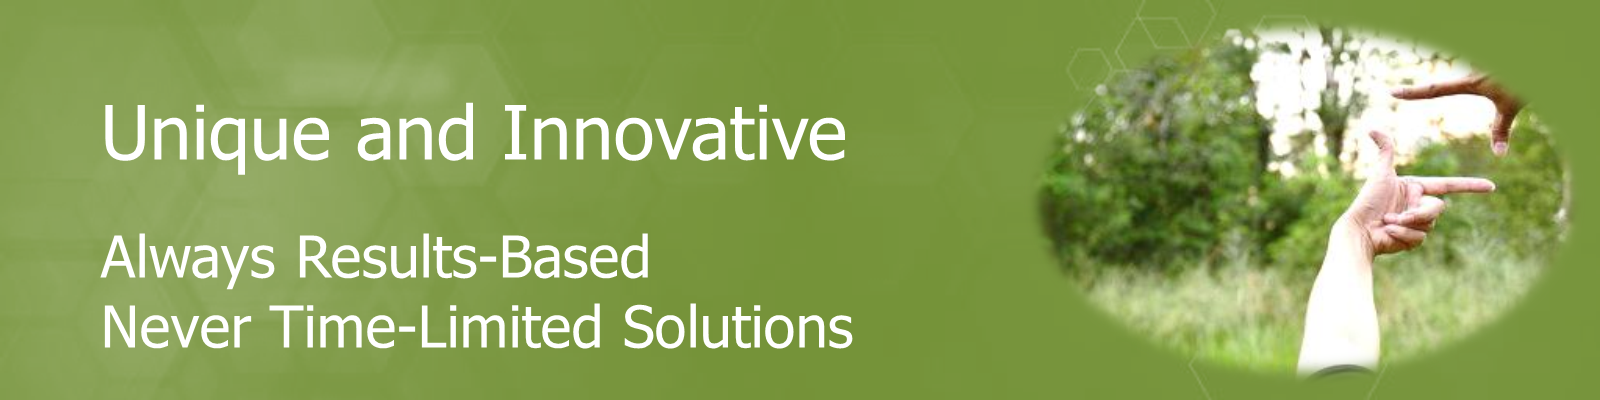 Unique and Innovative, Always Results based, never time limited solutions